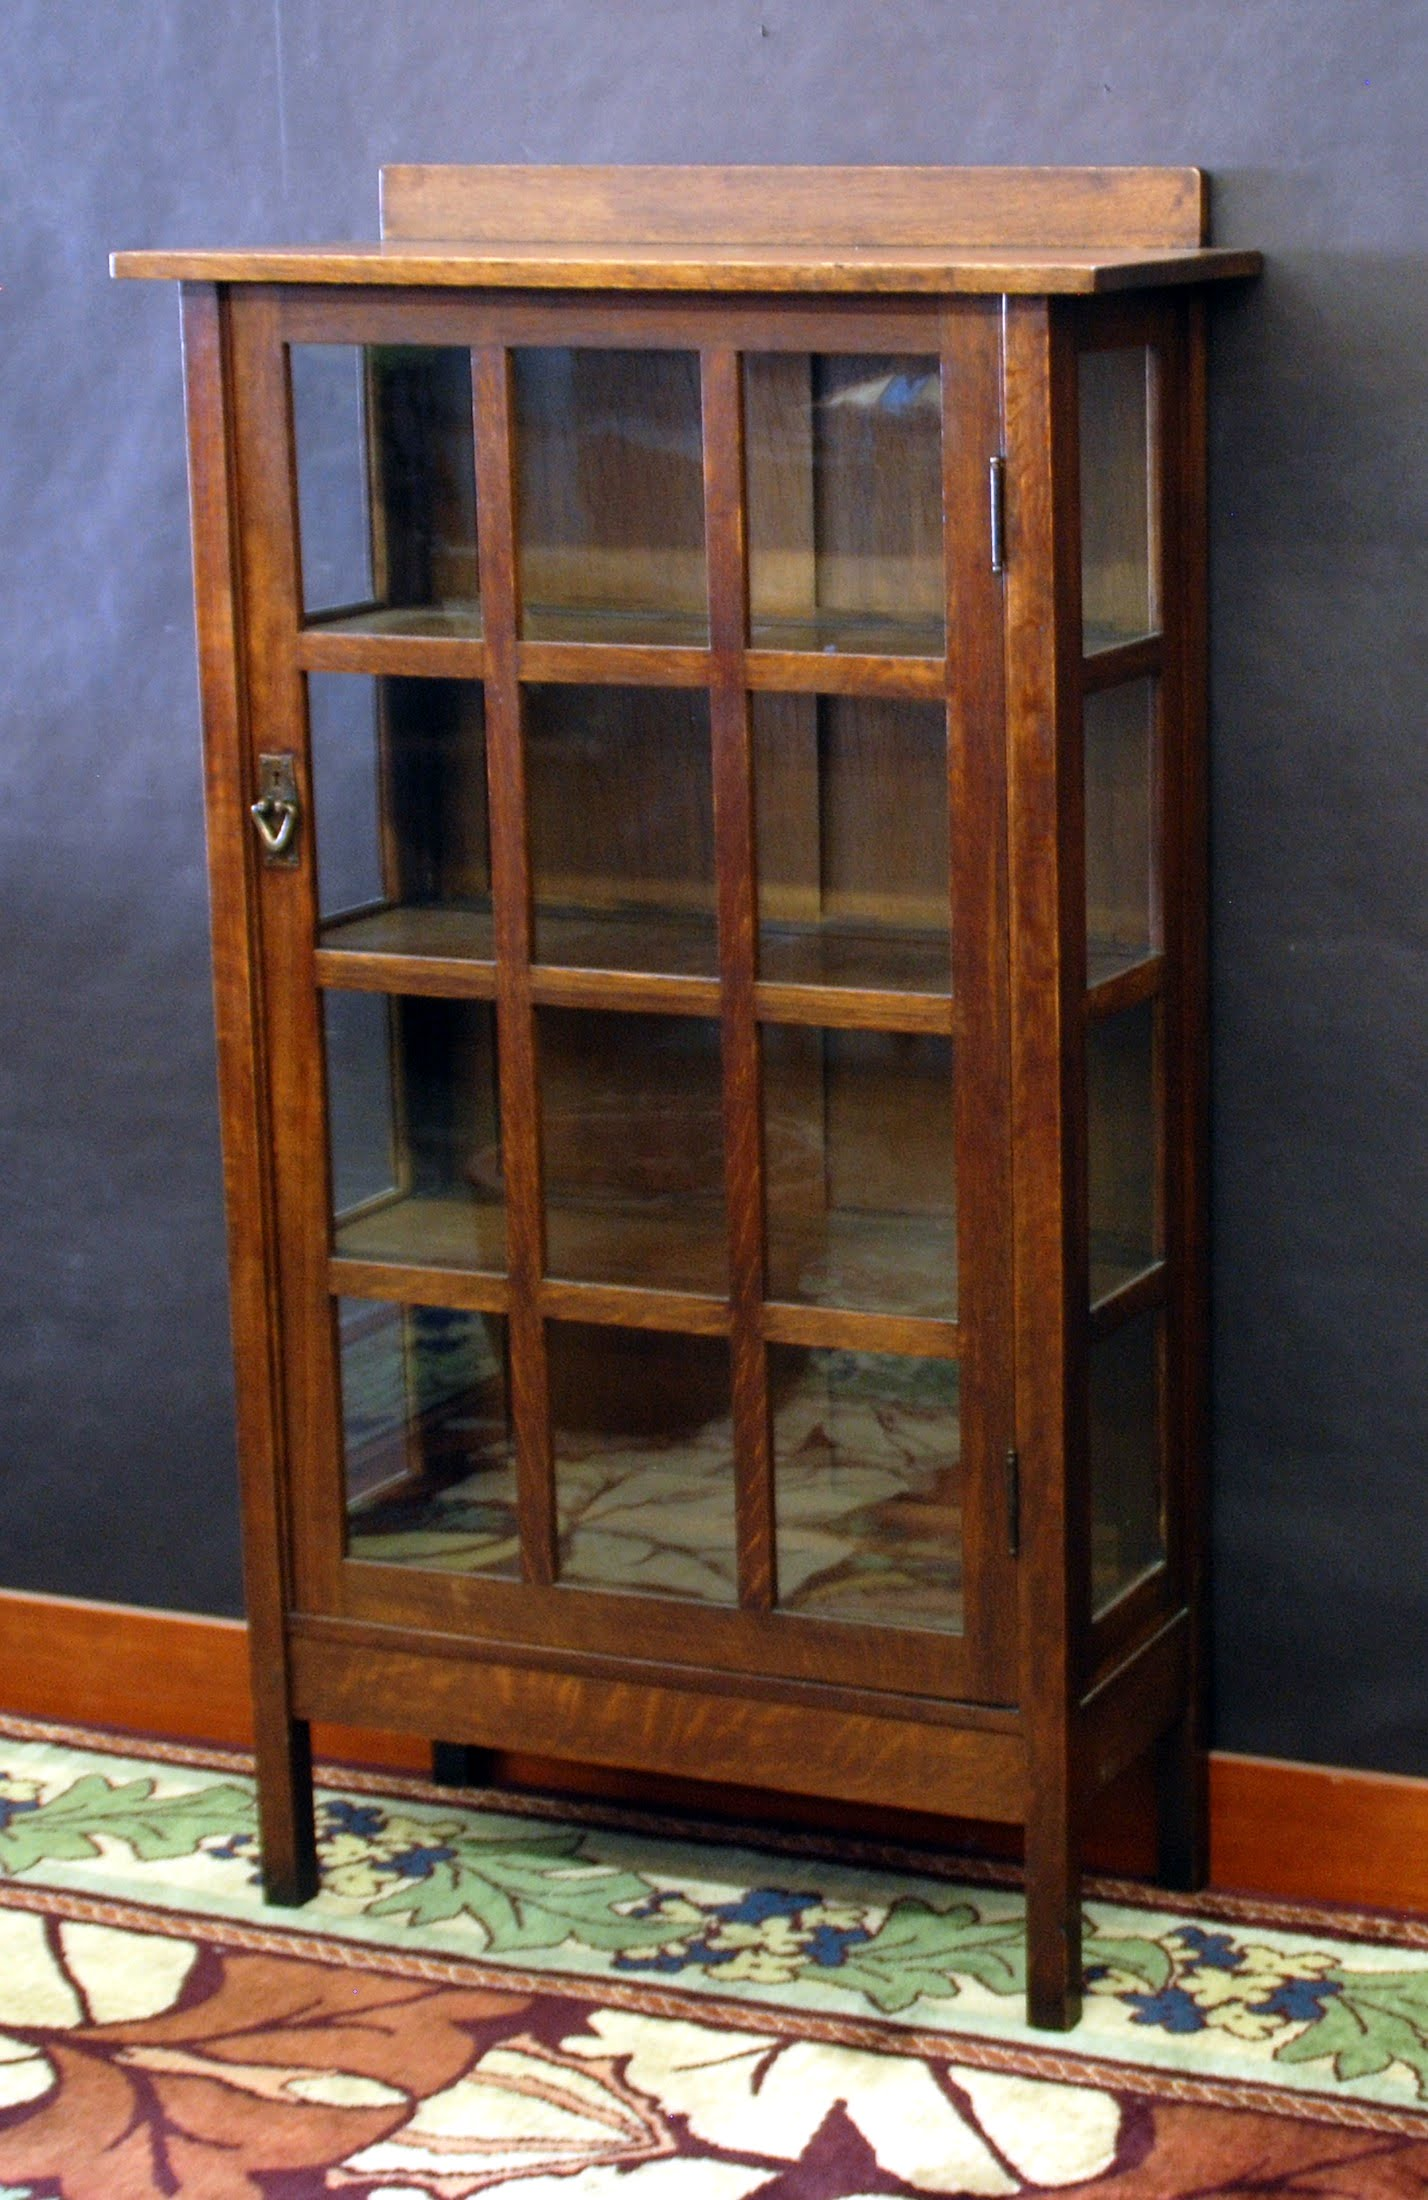 Wonderful Gustav Stickley Single Door China Cabinet Display Original Finish, Signed.